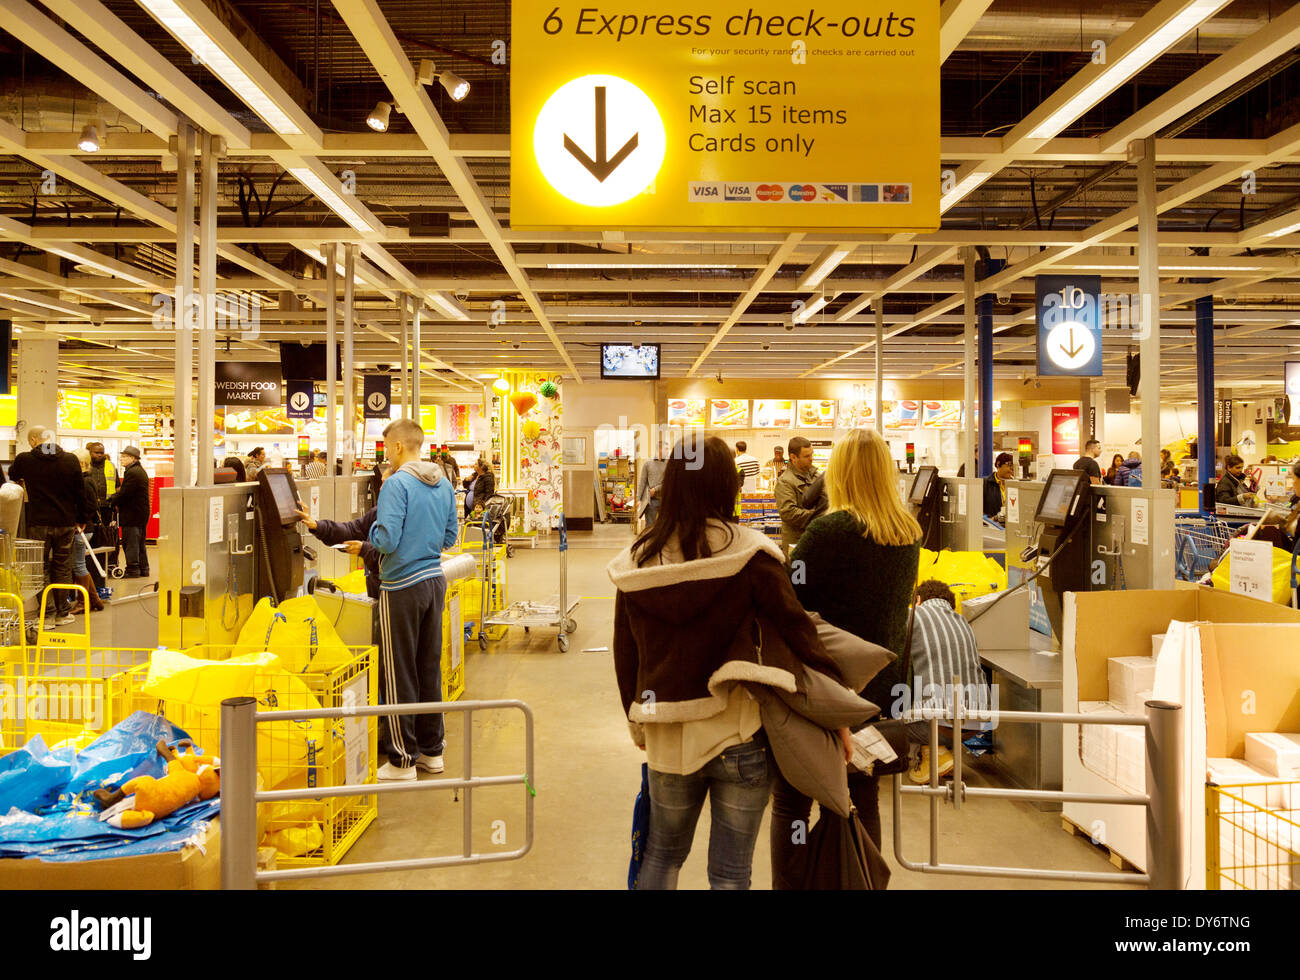 ikea store interior people shopping and waiting at the checkout stock photo 68377948 alamy. Black Bedroom Furniture Sets. Home Design Ideas